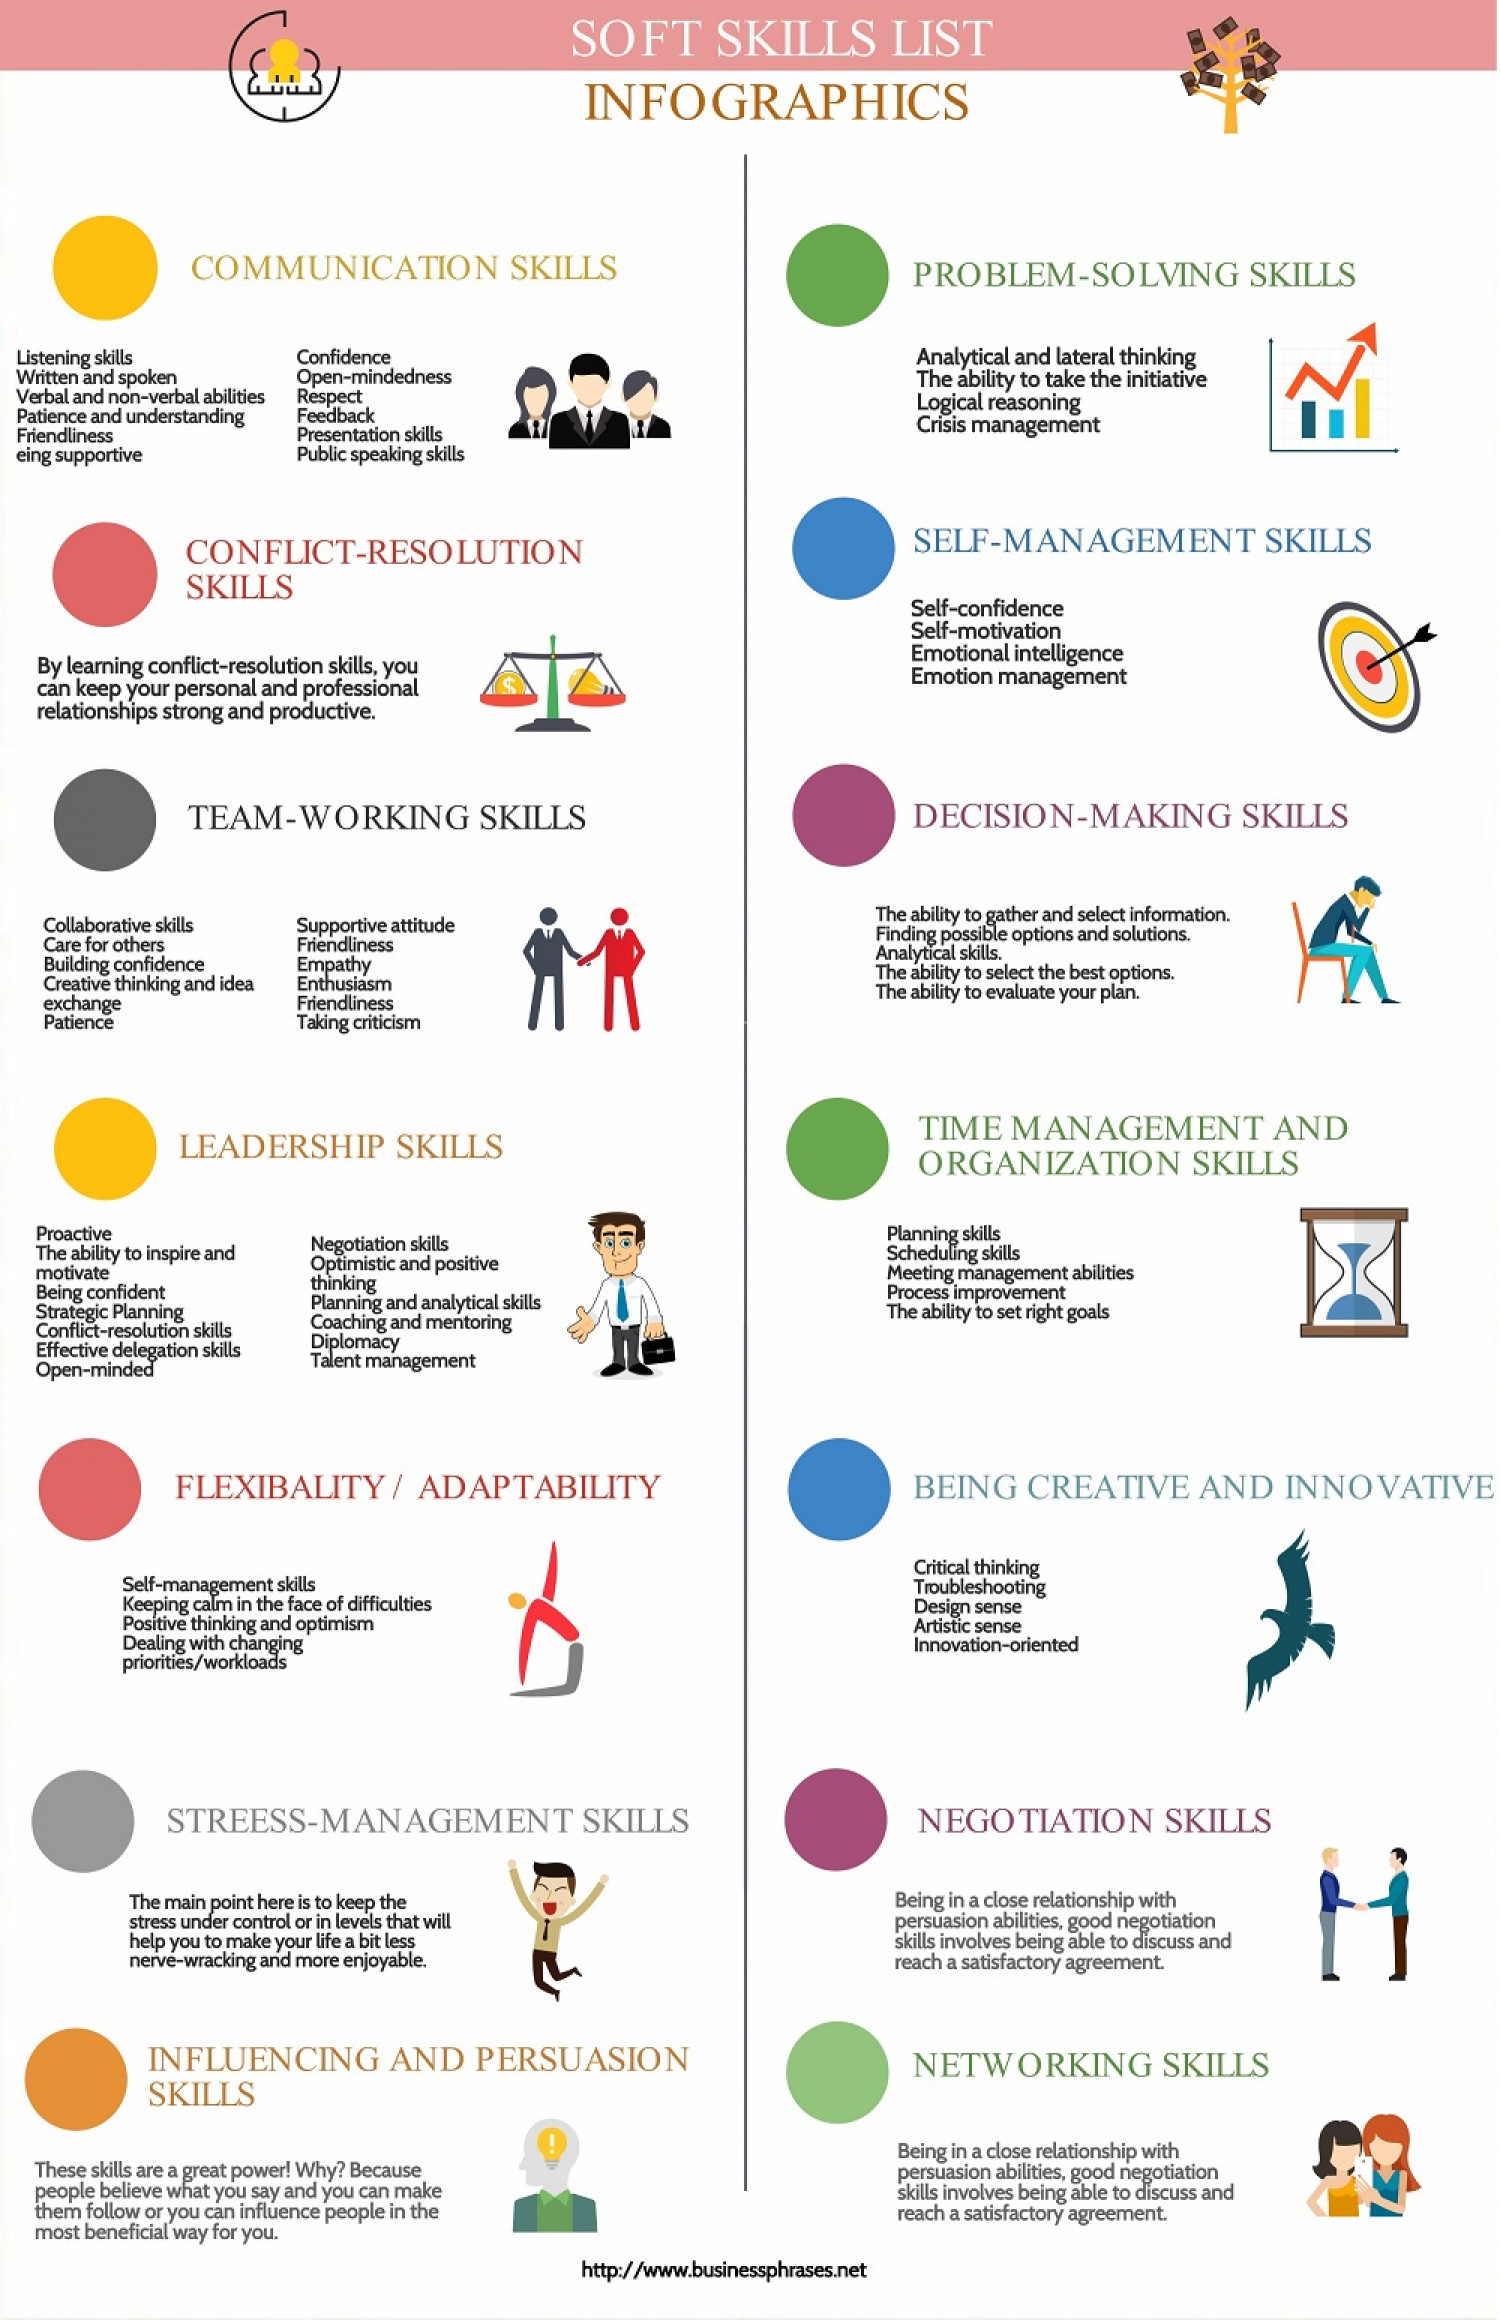 Soft Skills List Infographic